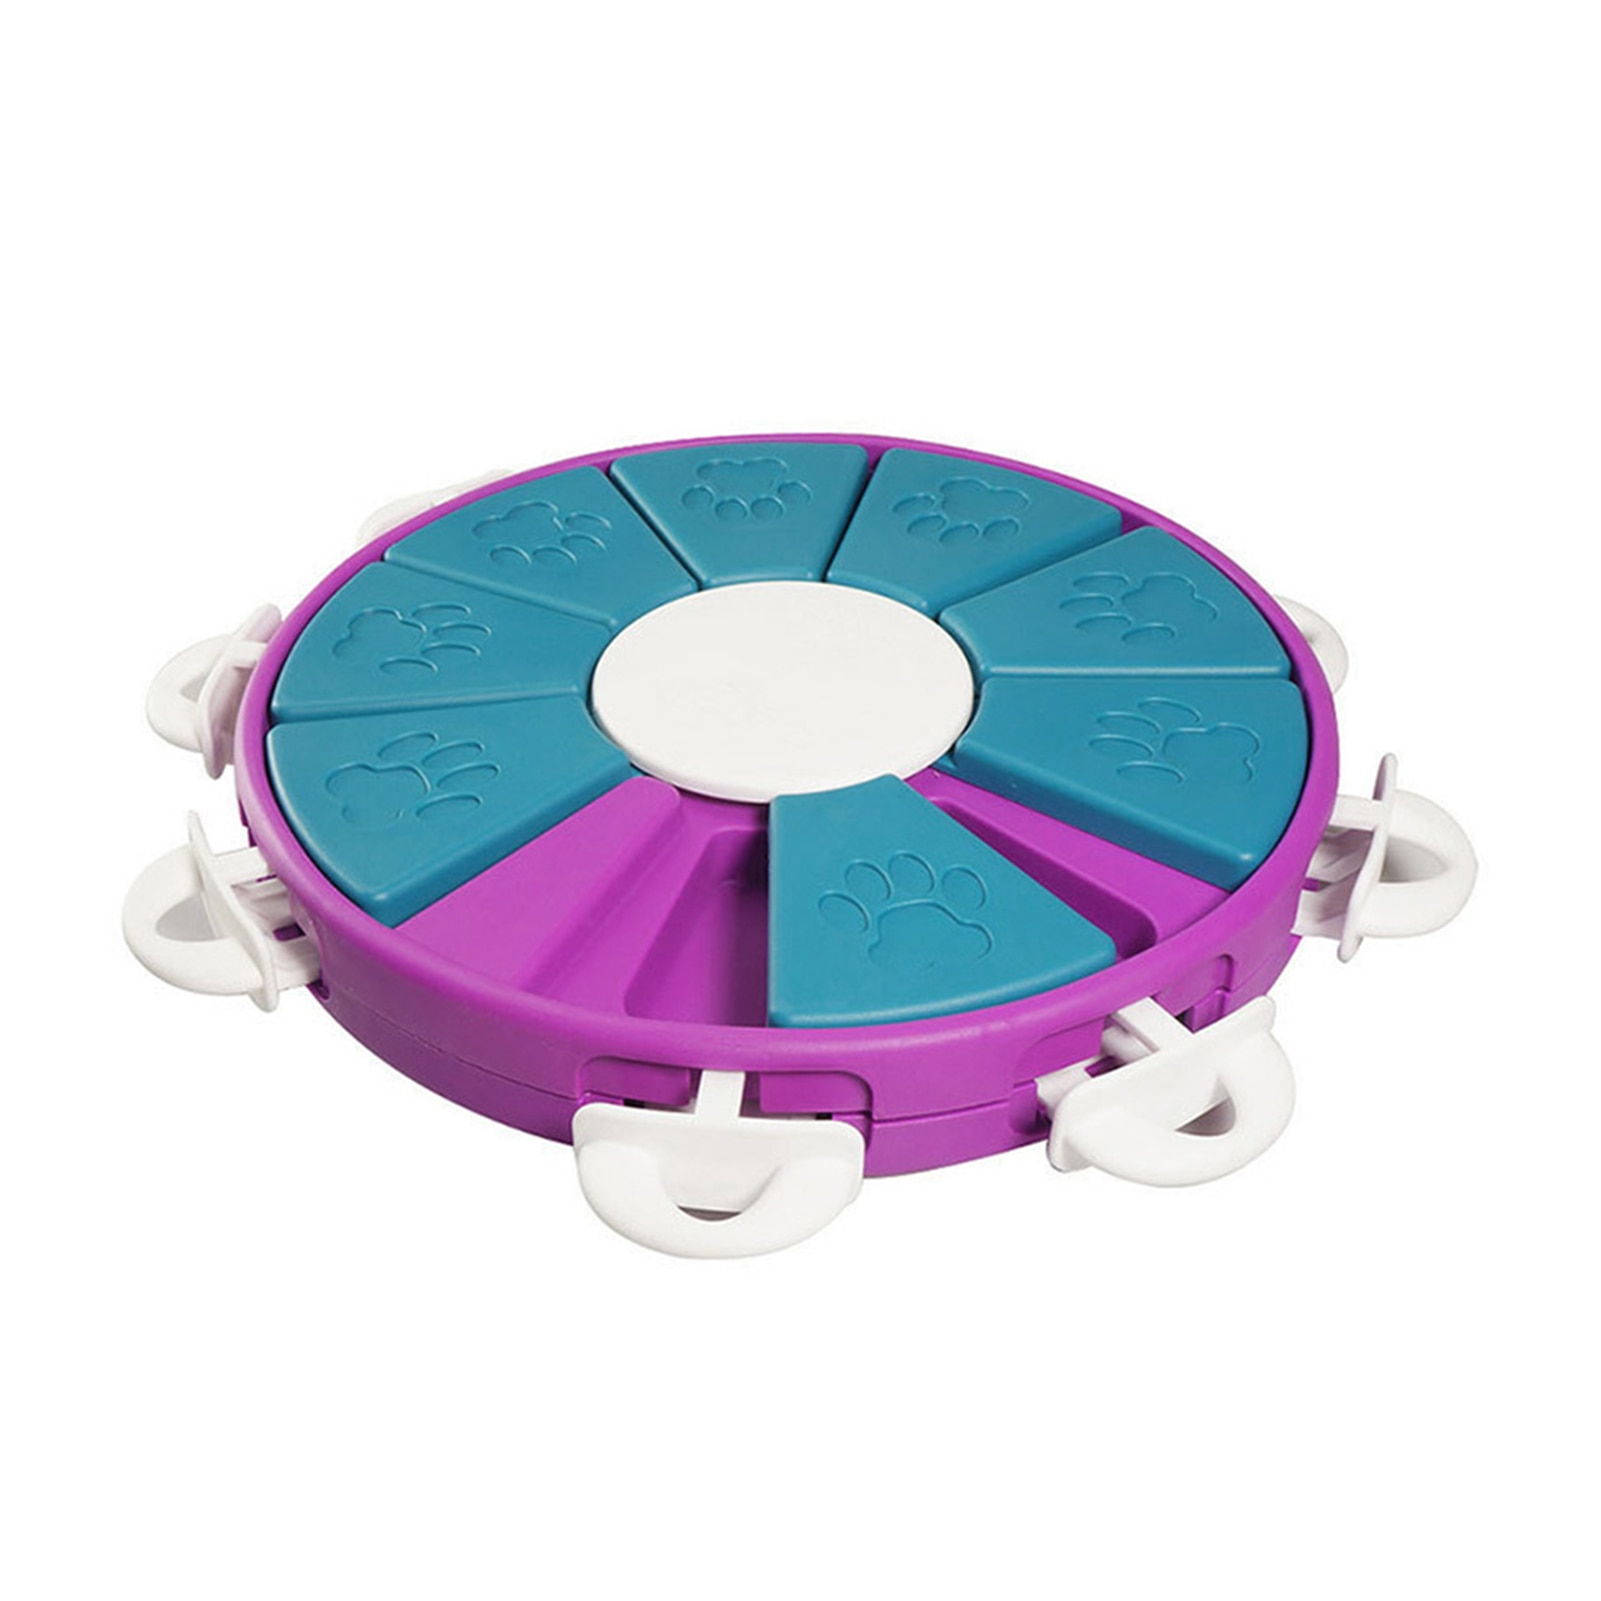 bowl-non-slip-home-pet-supplies-games-slow-dog-feeder-toy-abs-puppy-treat-dispenser-bite-resistant-portable-interactive-training